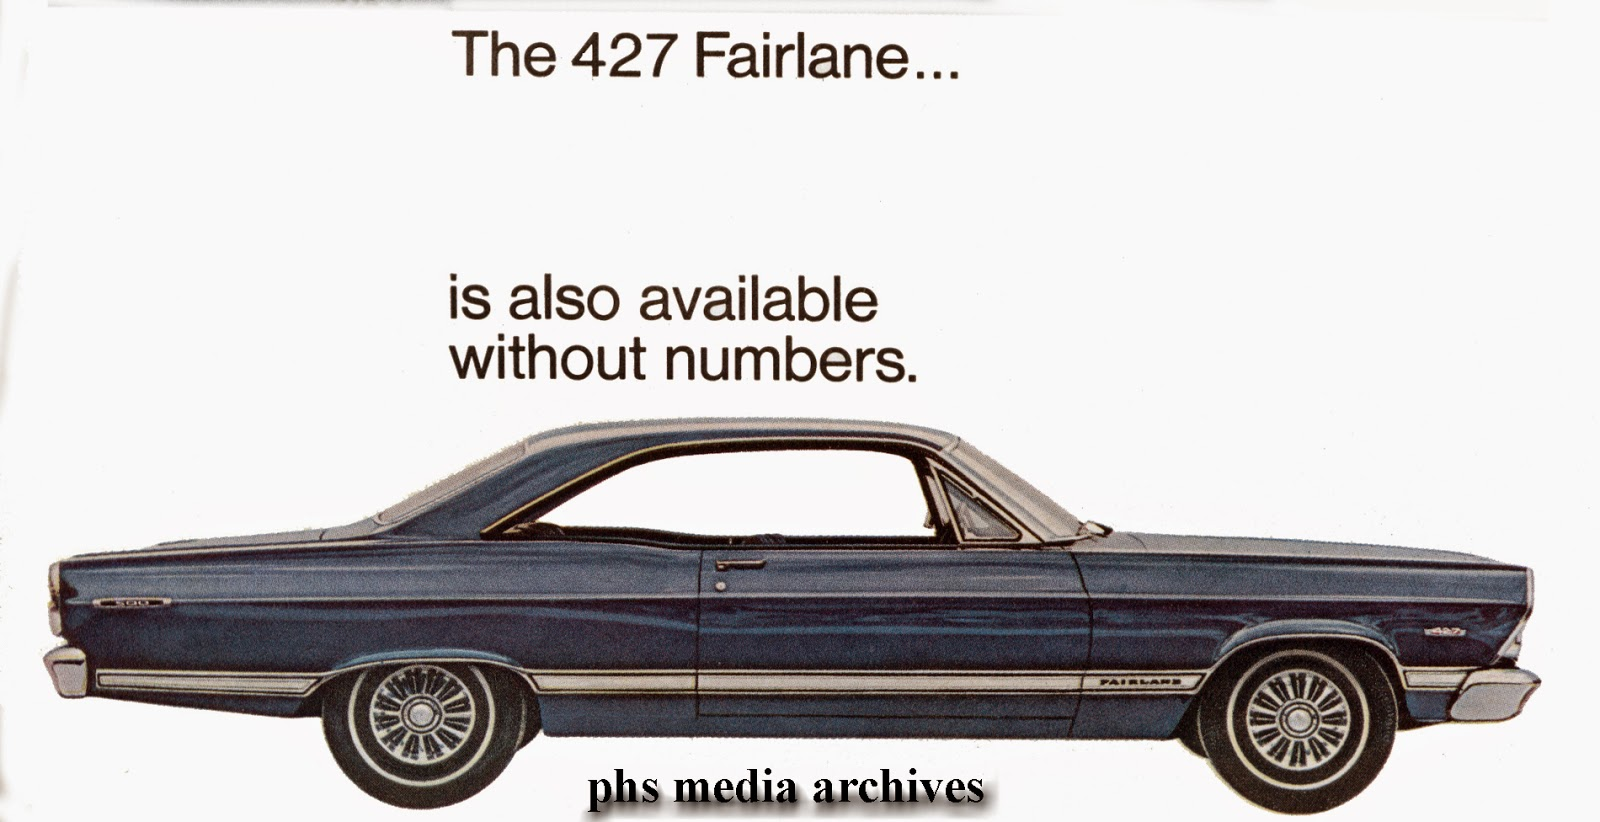 The big block 427 fairlane had its own special cold air induction hood